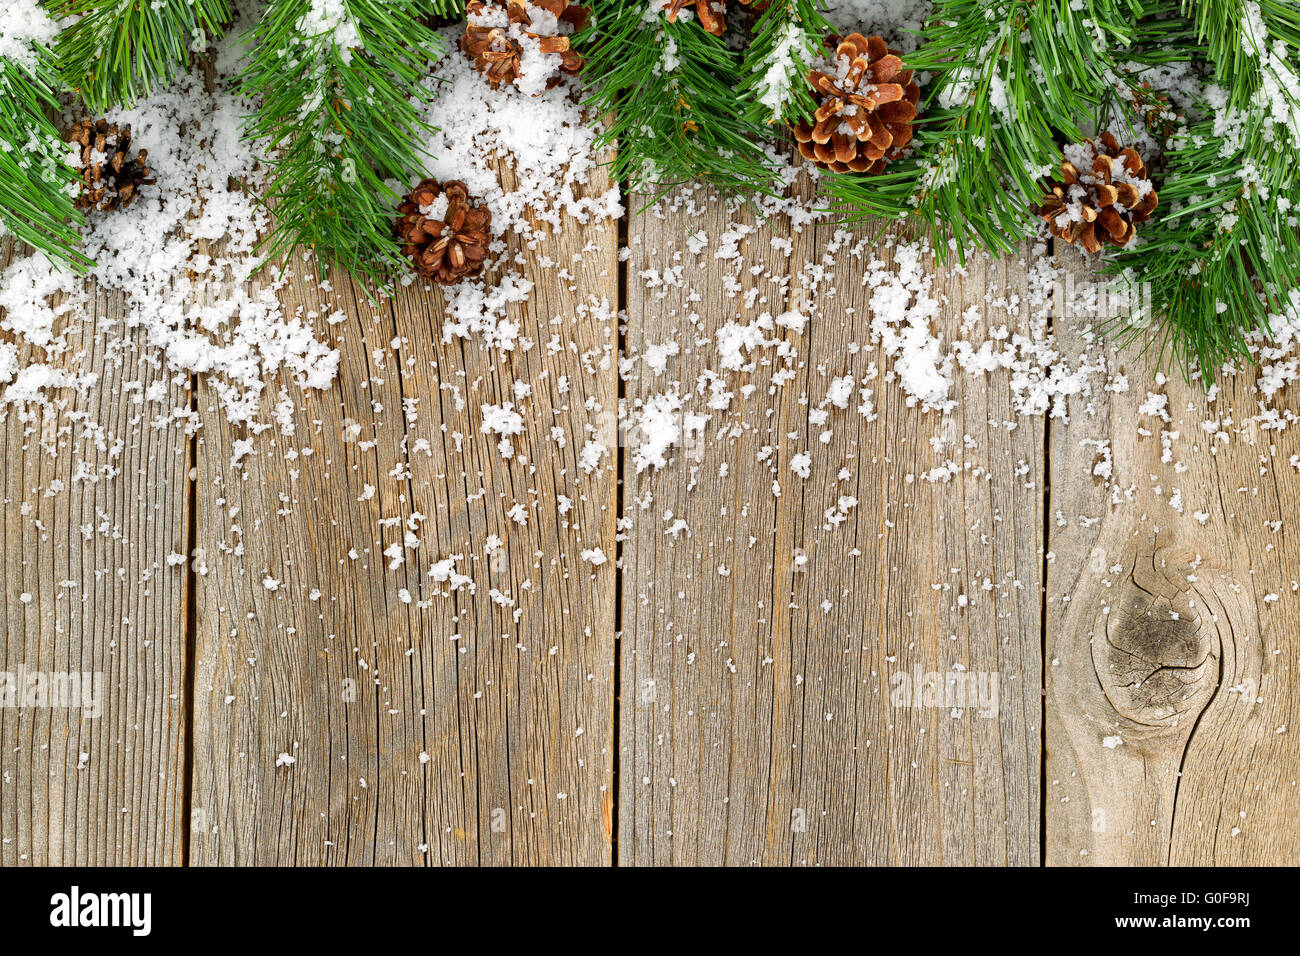 Christmas Border Decorations With Snow On Rustic Wooden